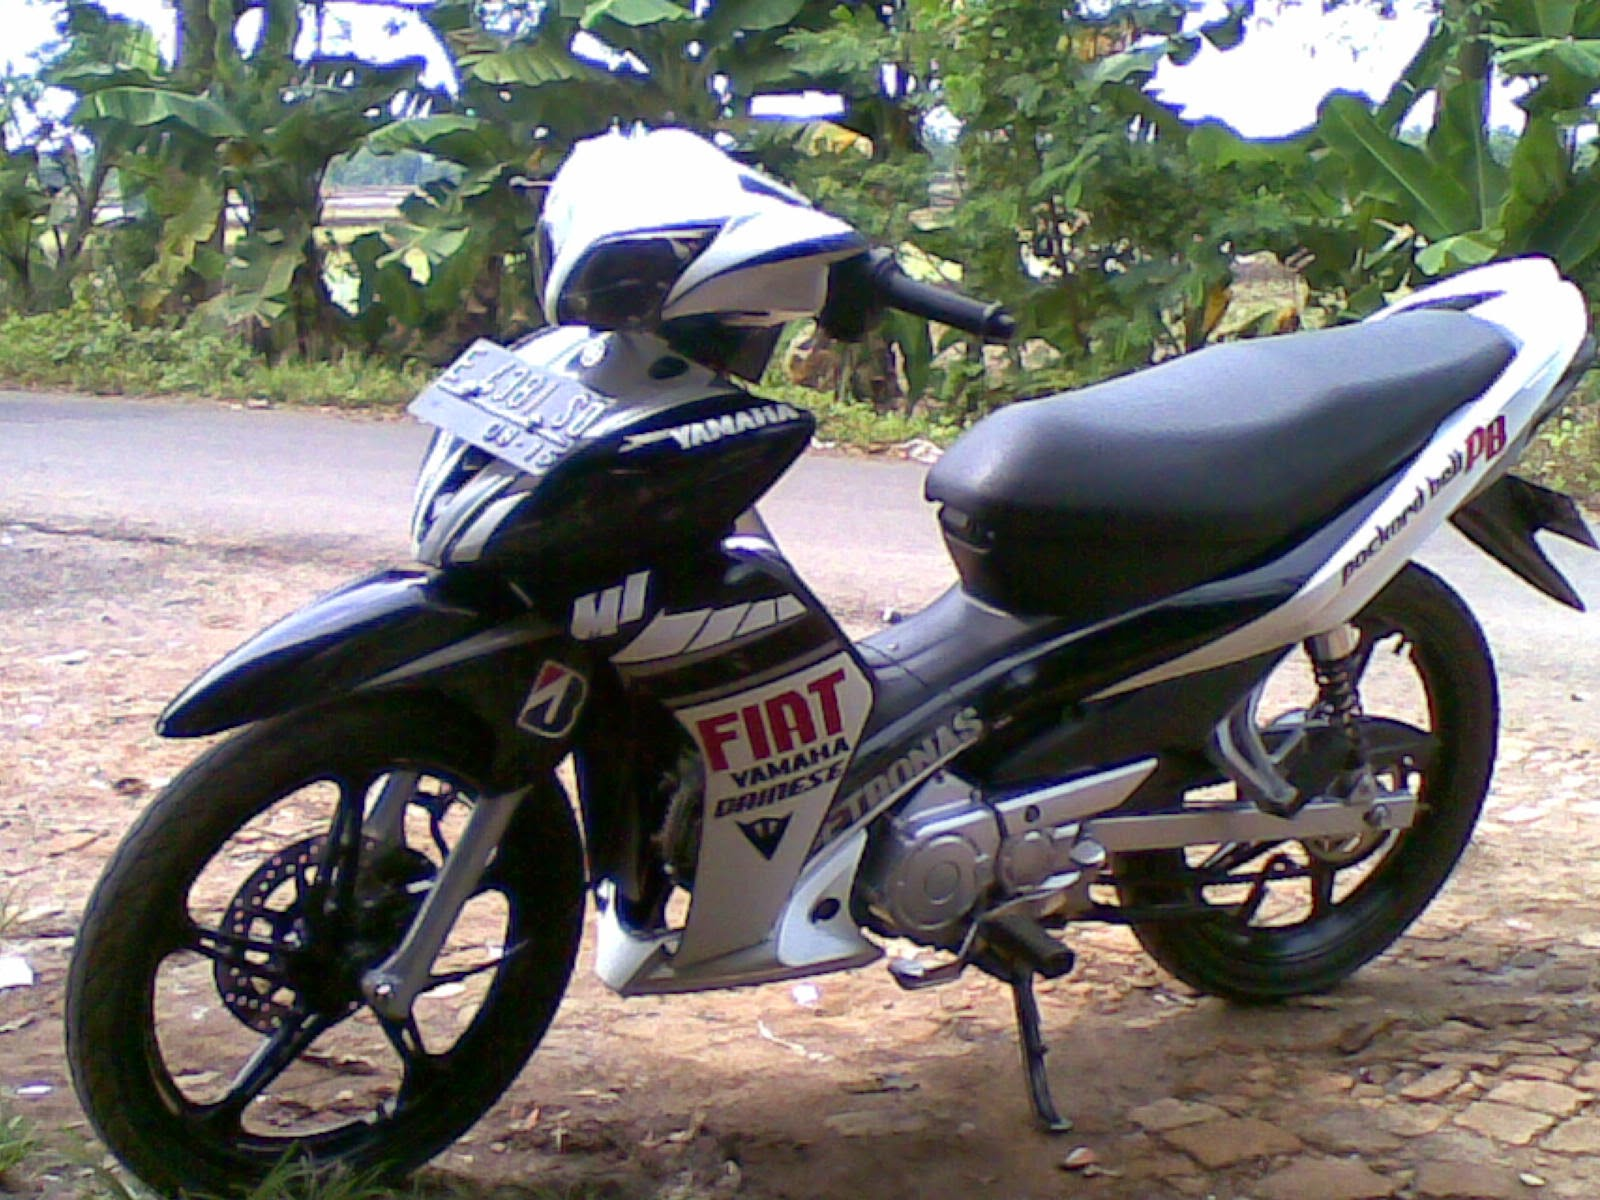 Modifikasi Motor Jupiter Mx Warna Hitam